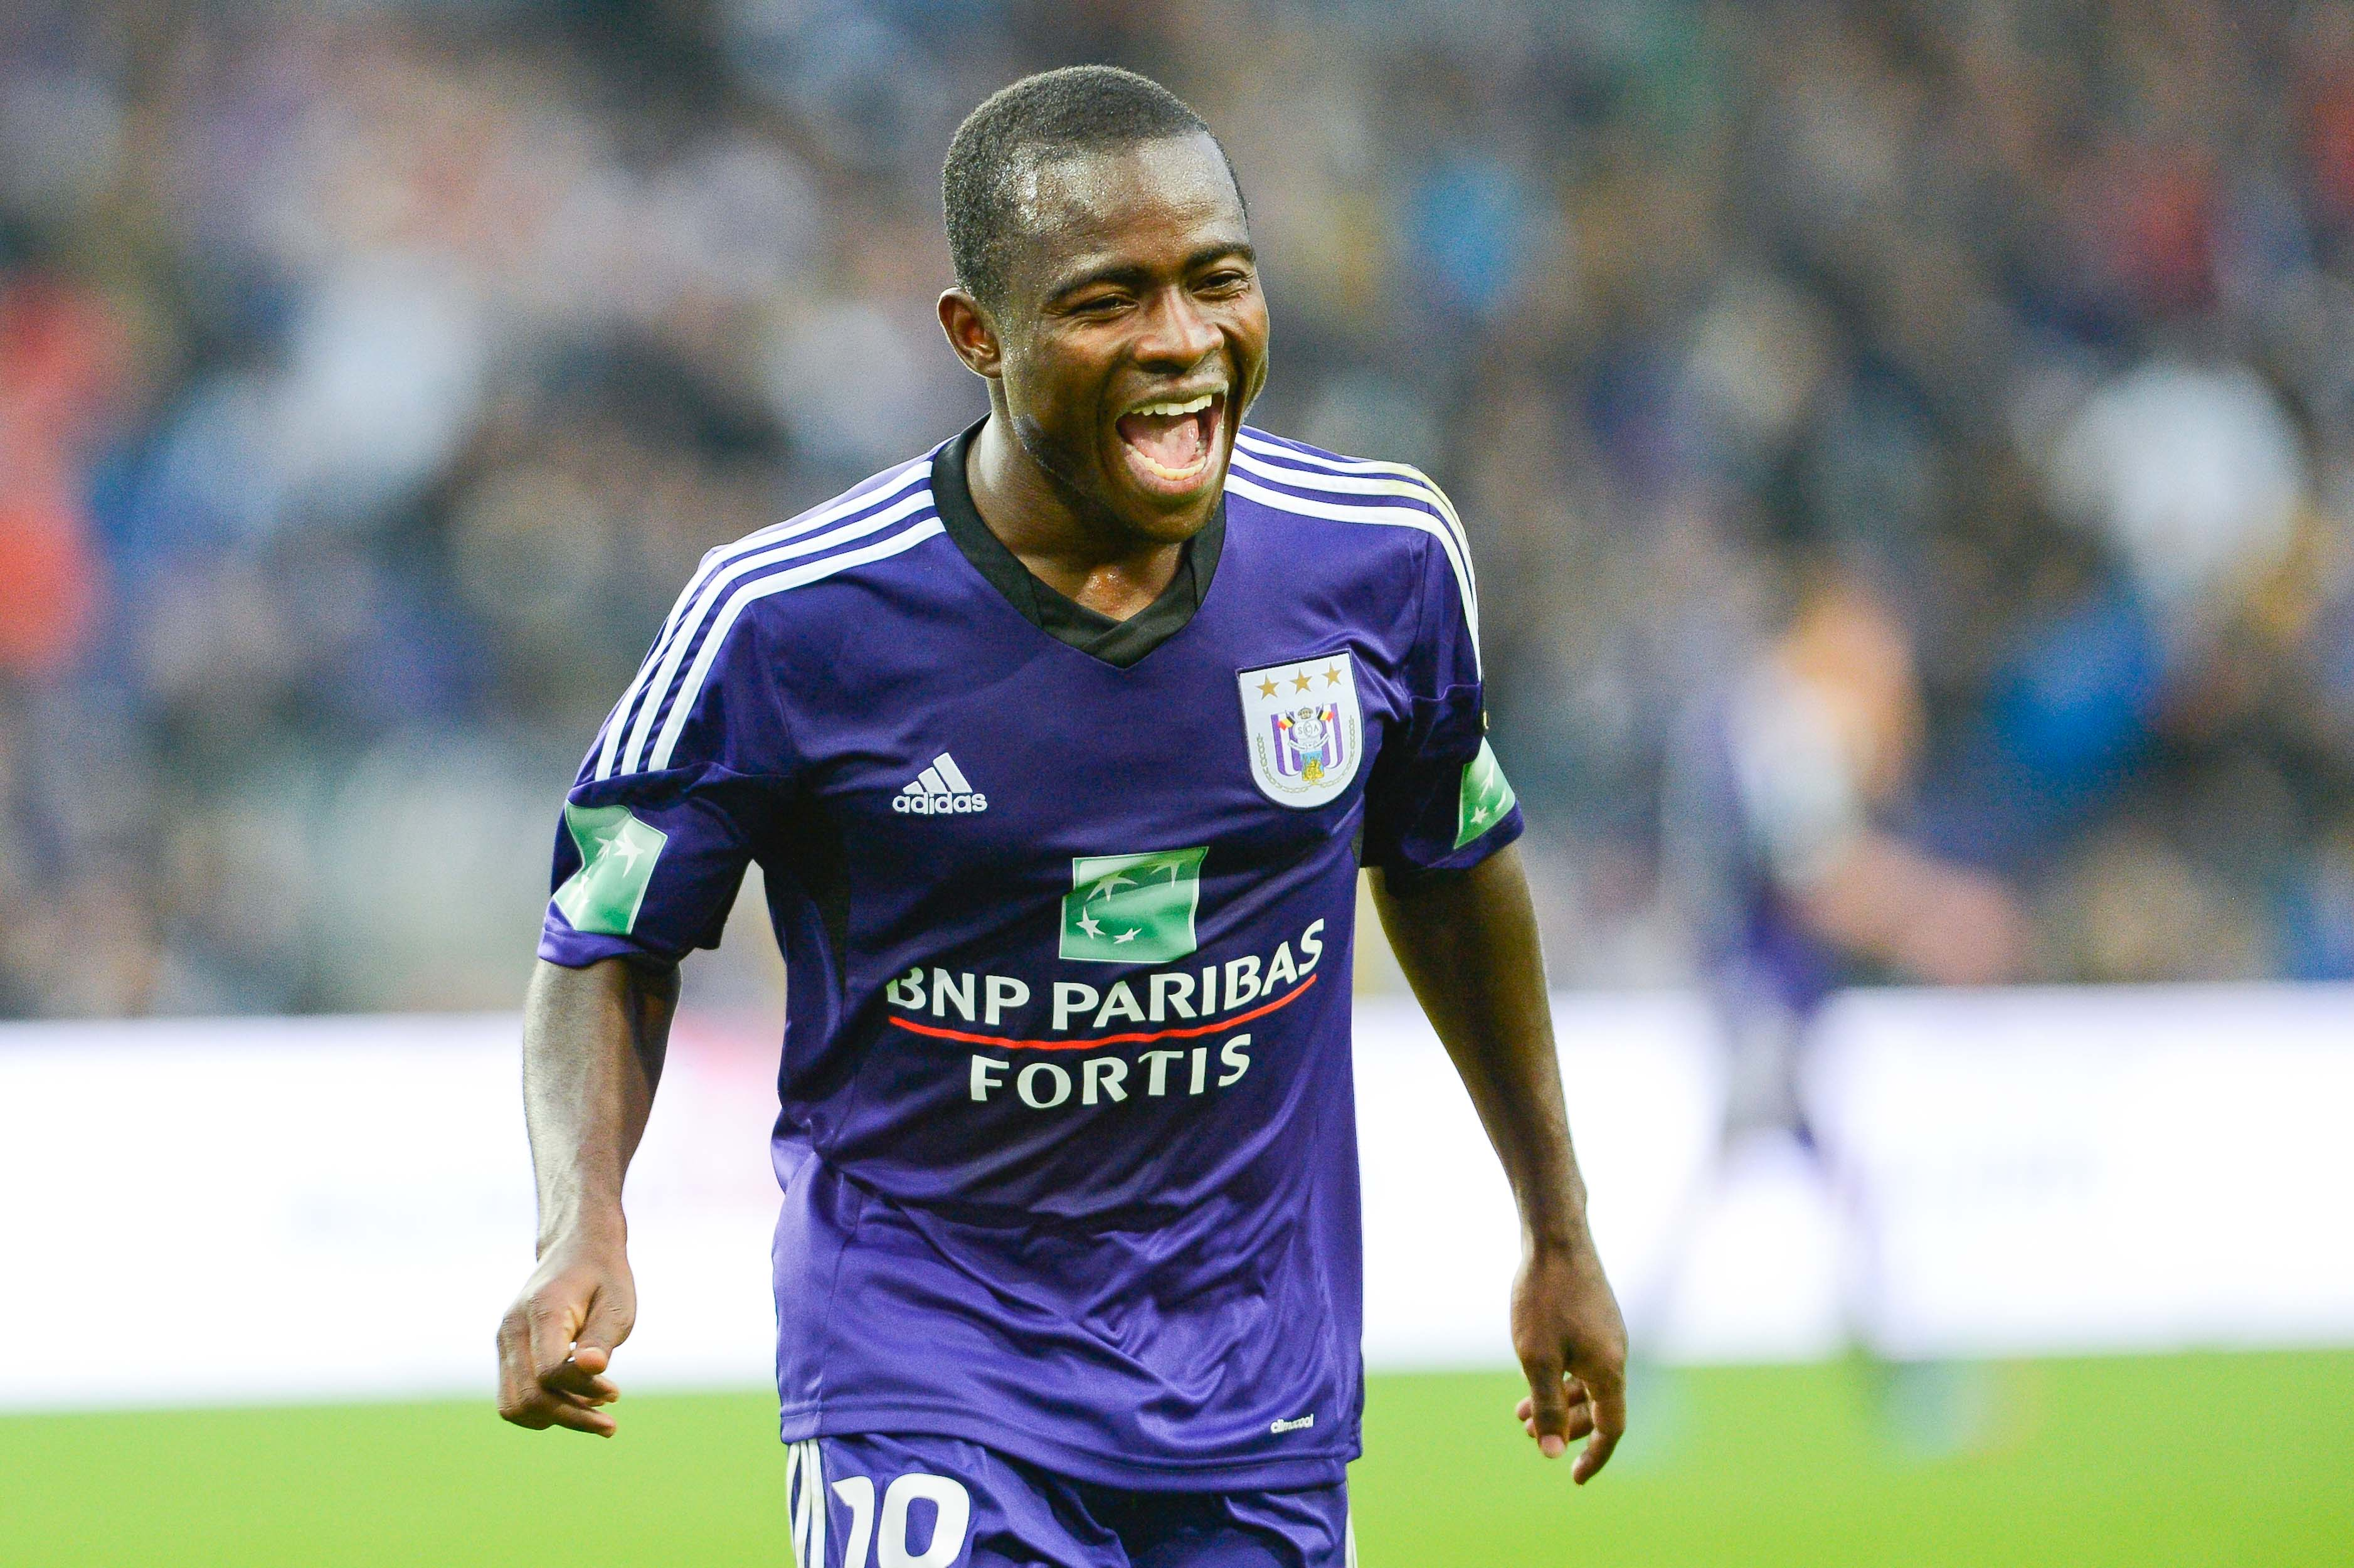 Frank Acheampong has been outstanding for Anderlecht